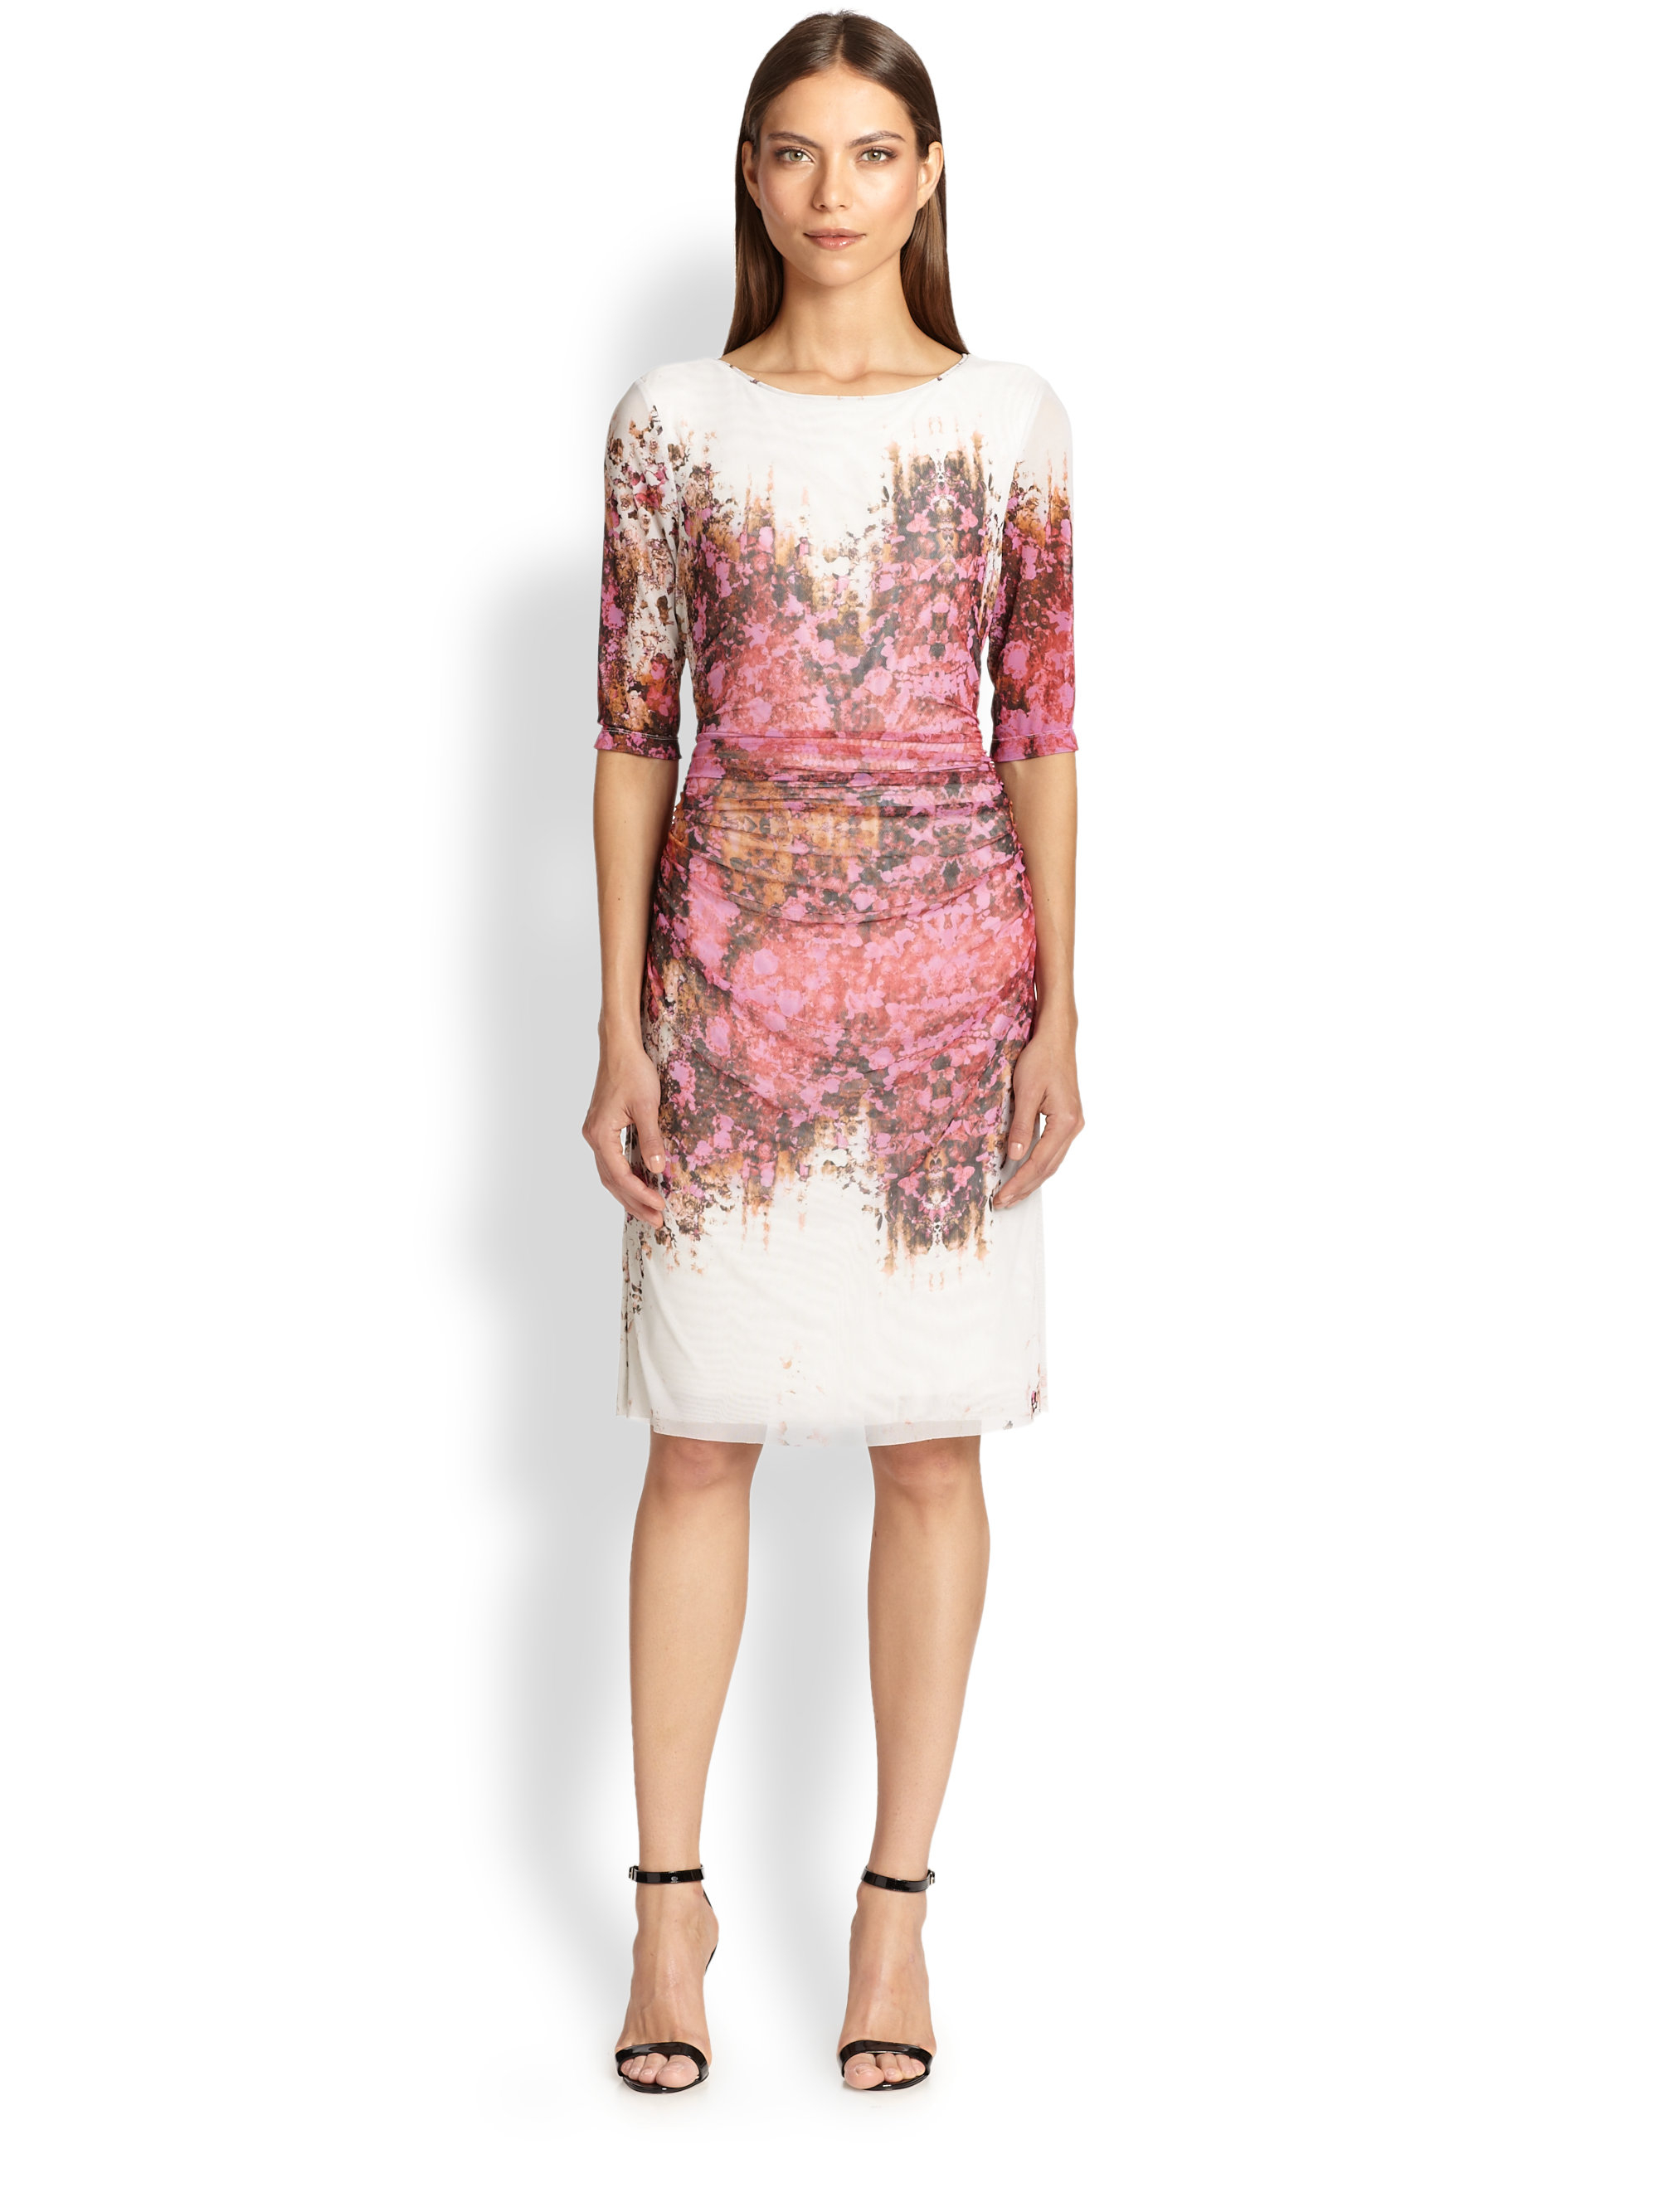 Lyst - Kay Unger Printed Mesh Dress in Pink